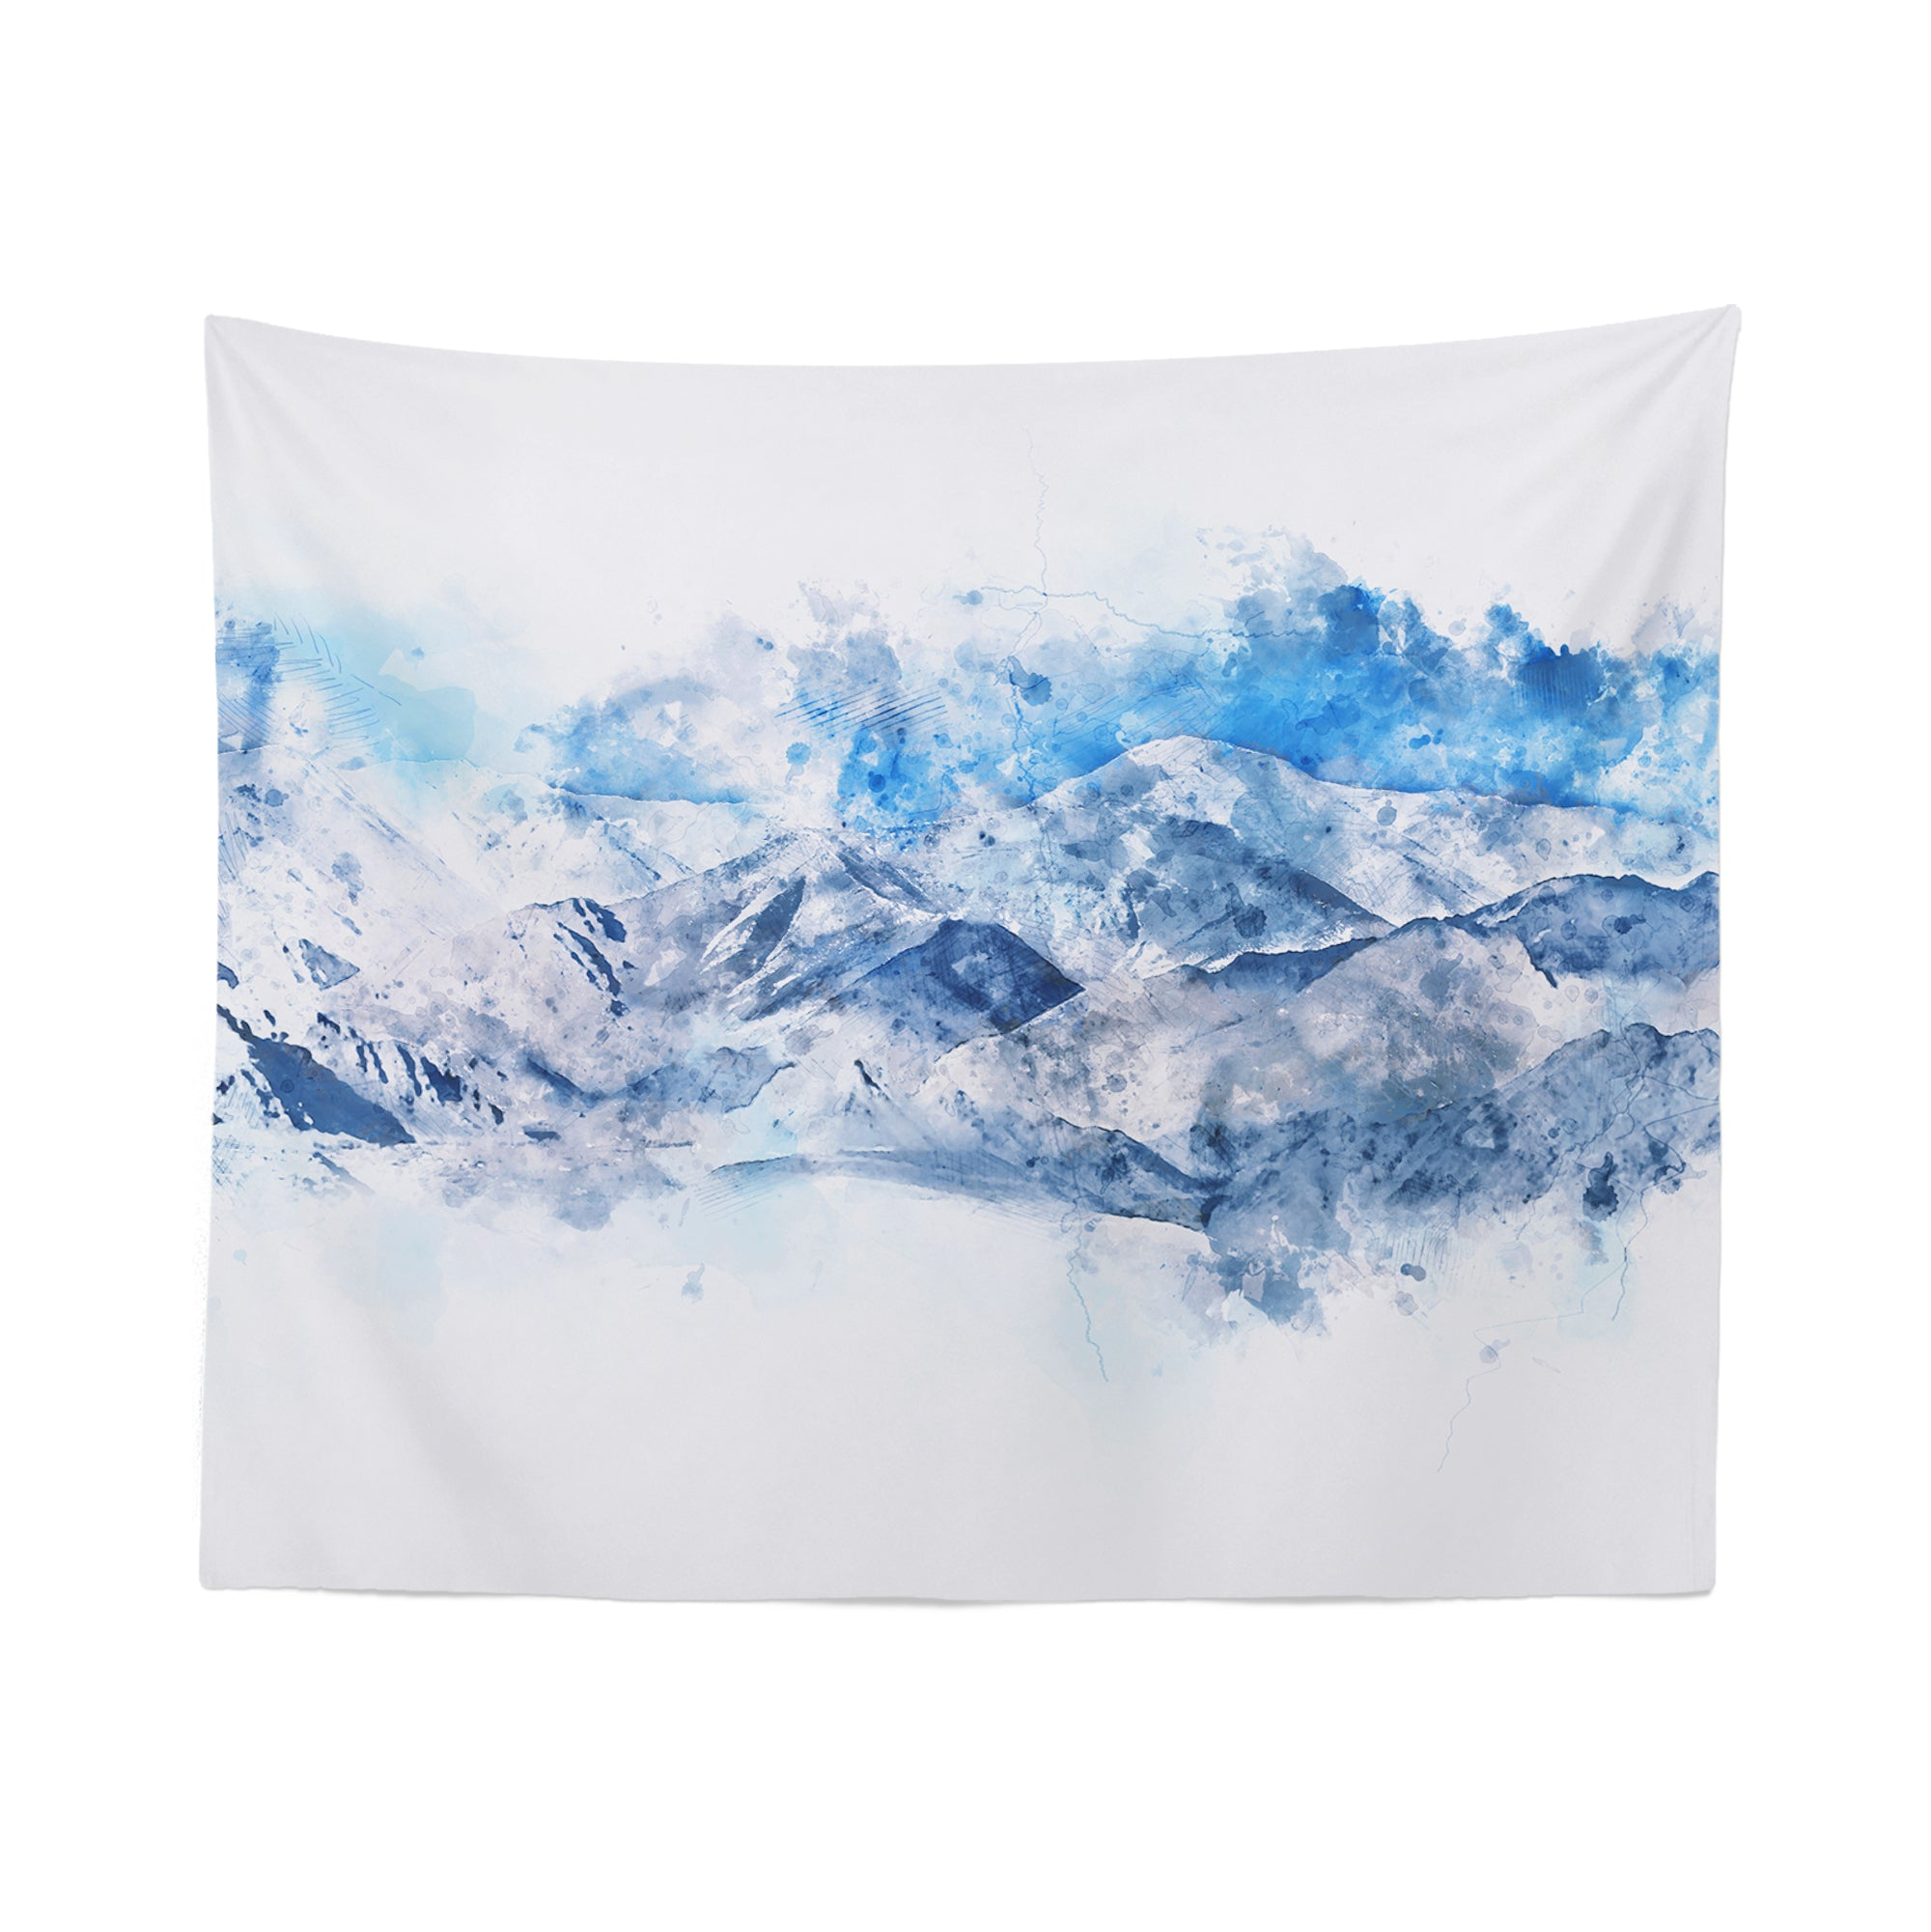 Scenic Landscape Wall Tapestry